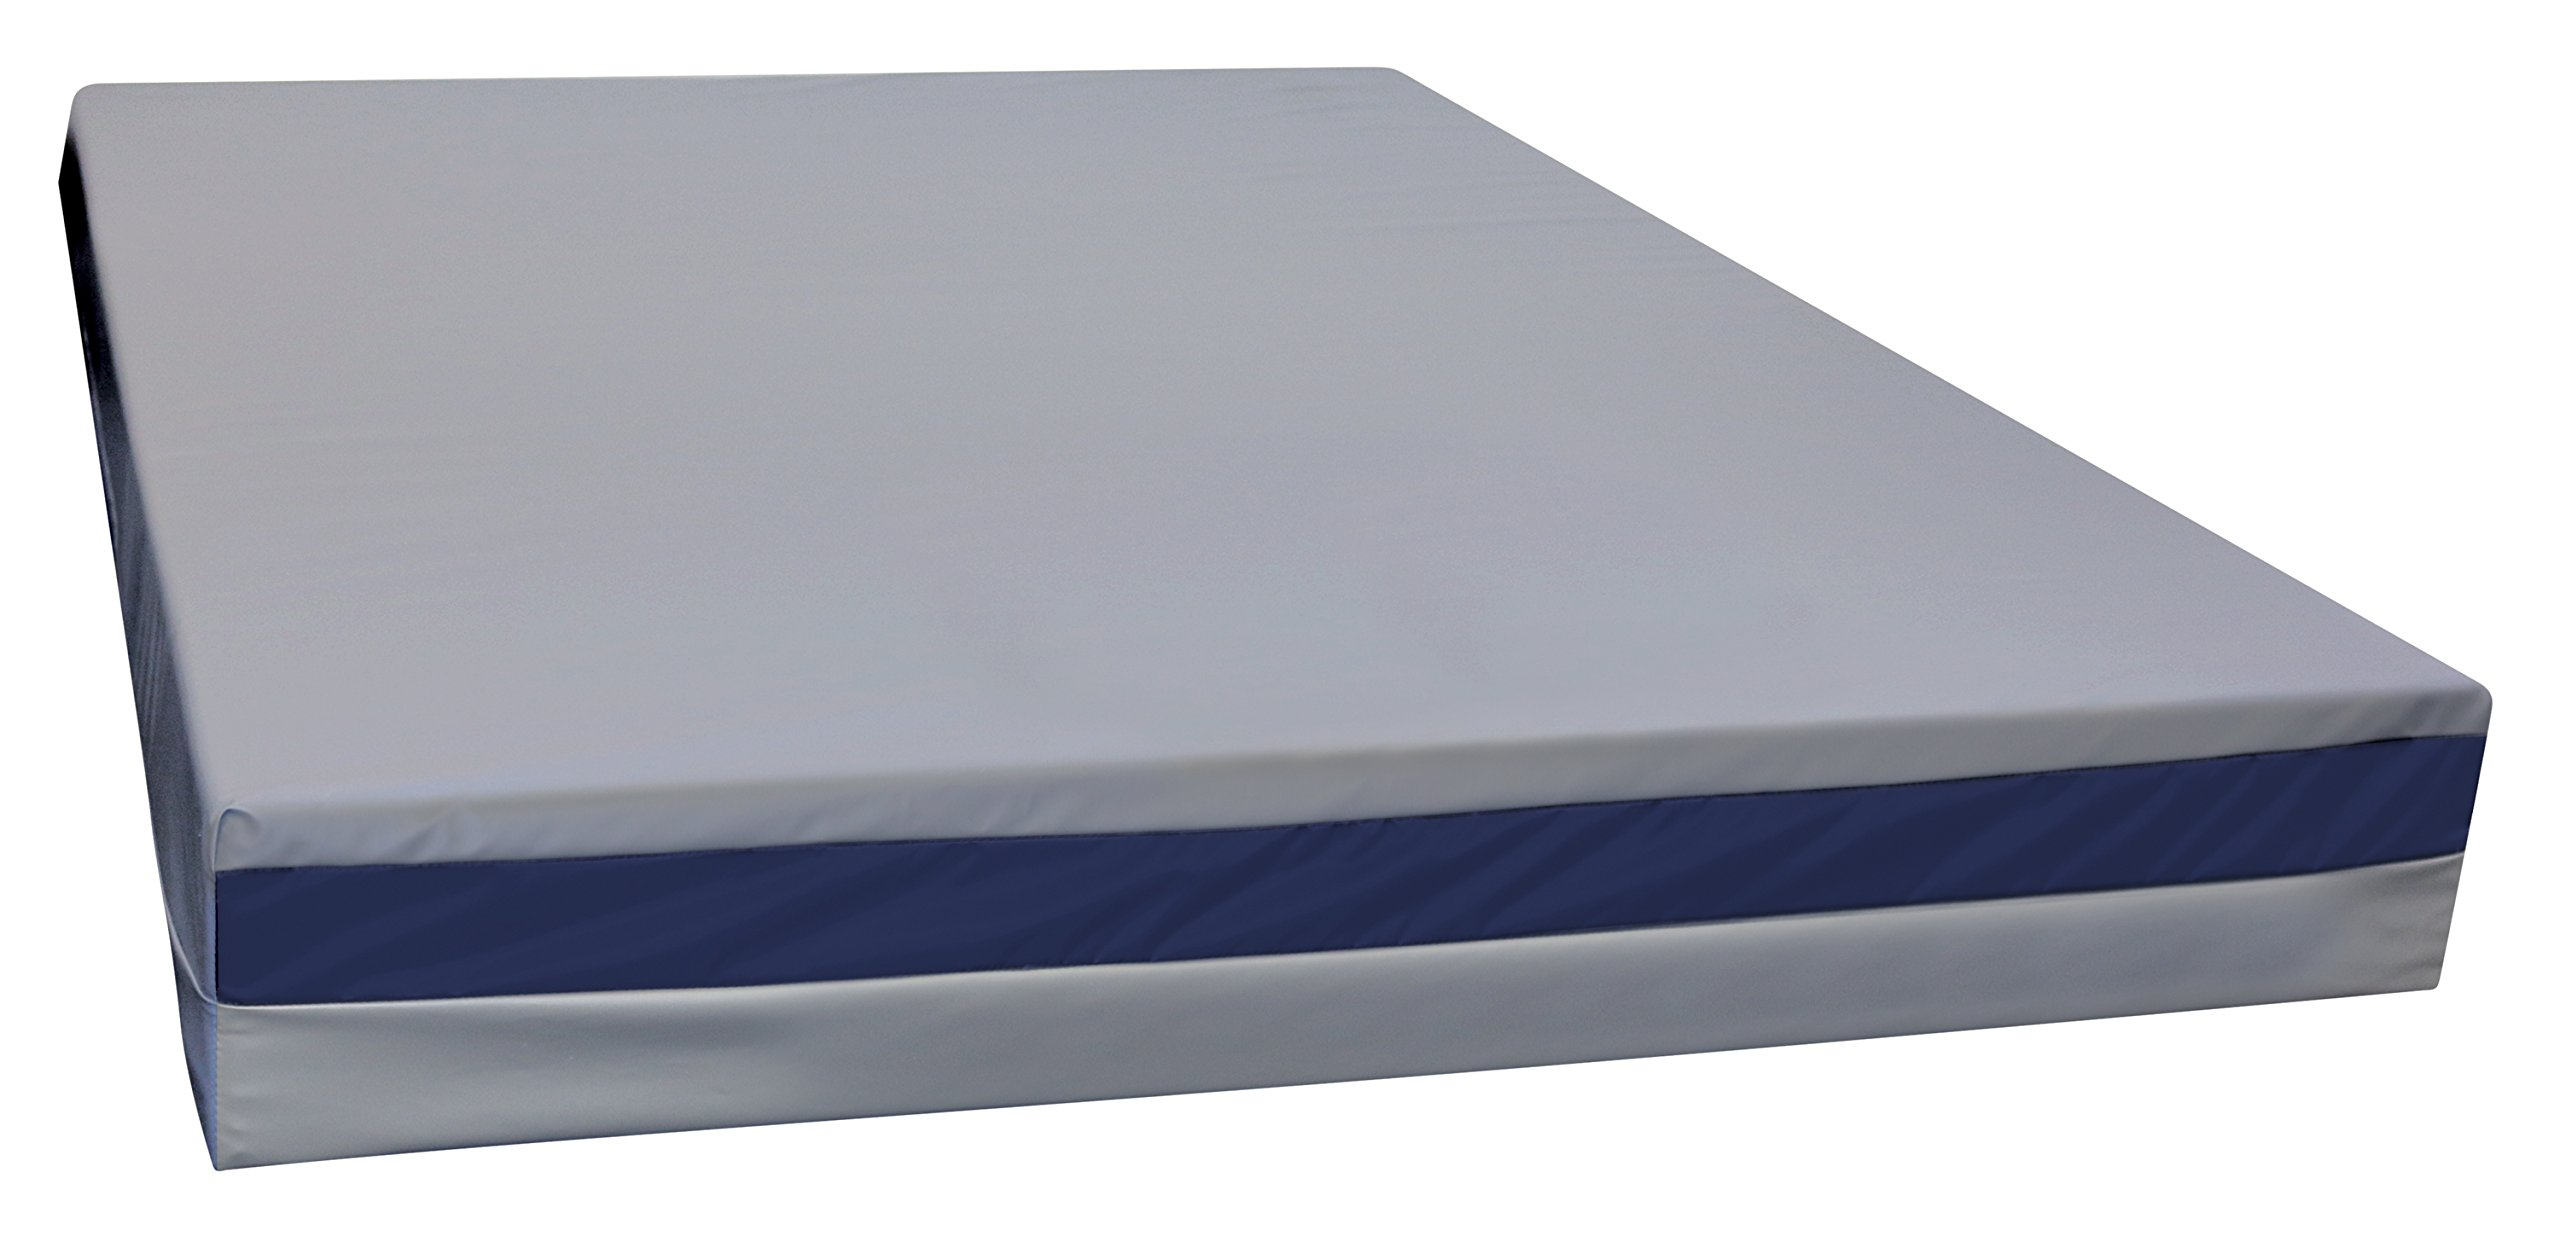 Full Bed-Wetting Mattress